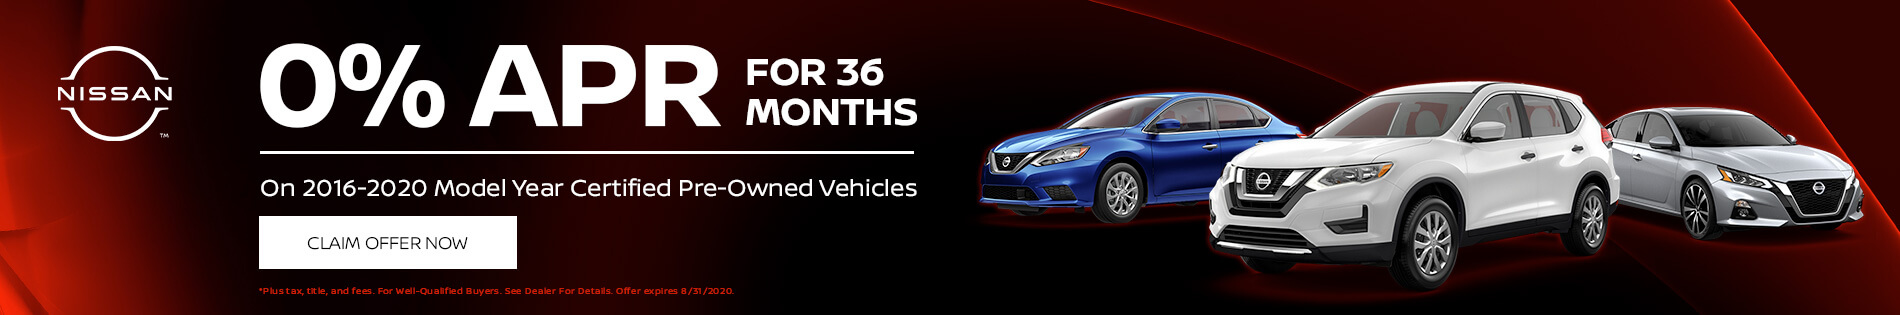 0% APR for 36 months on 2016-2020 Model Year Certified Pre-Owned Vehicles